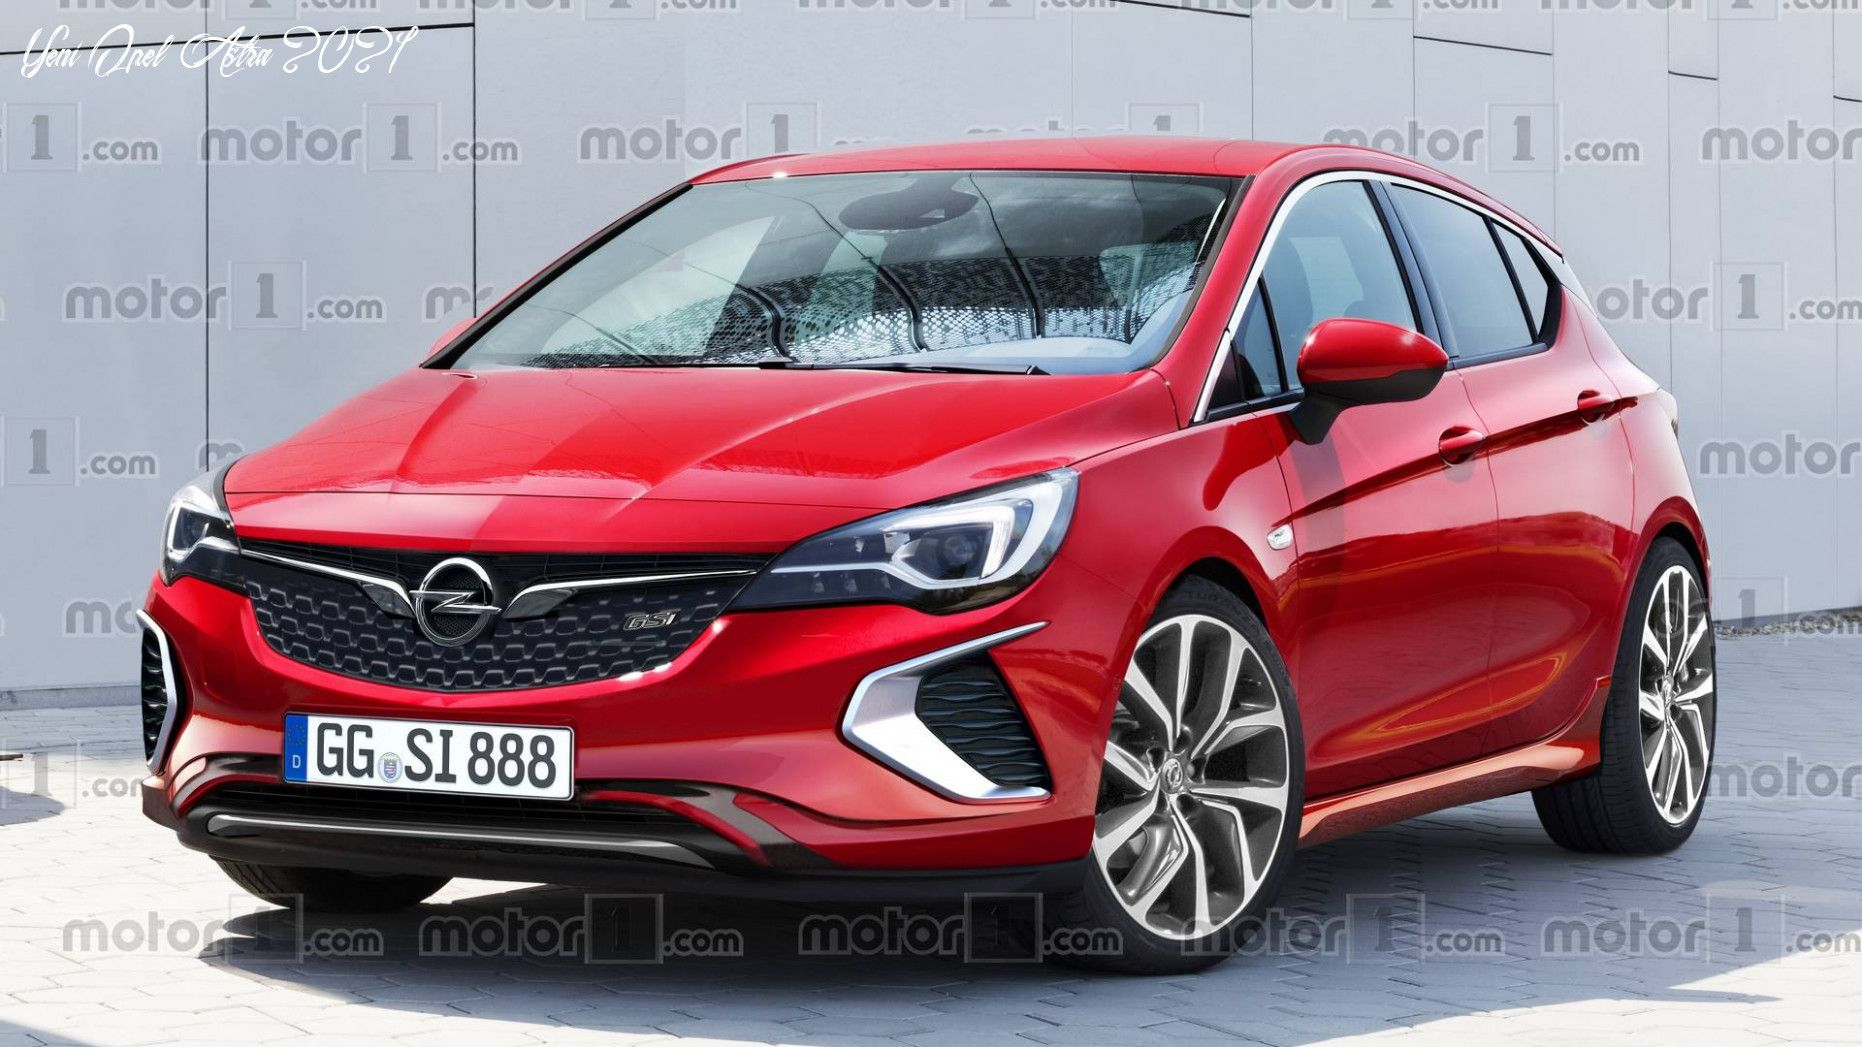 Yeni Opel Astra 2021 Photos In 2020 New Cars Opel Corsa Opel